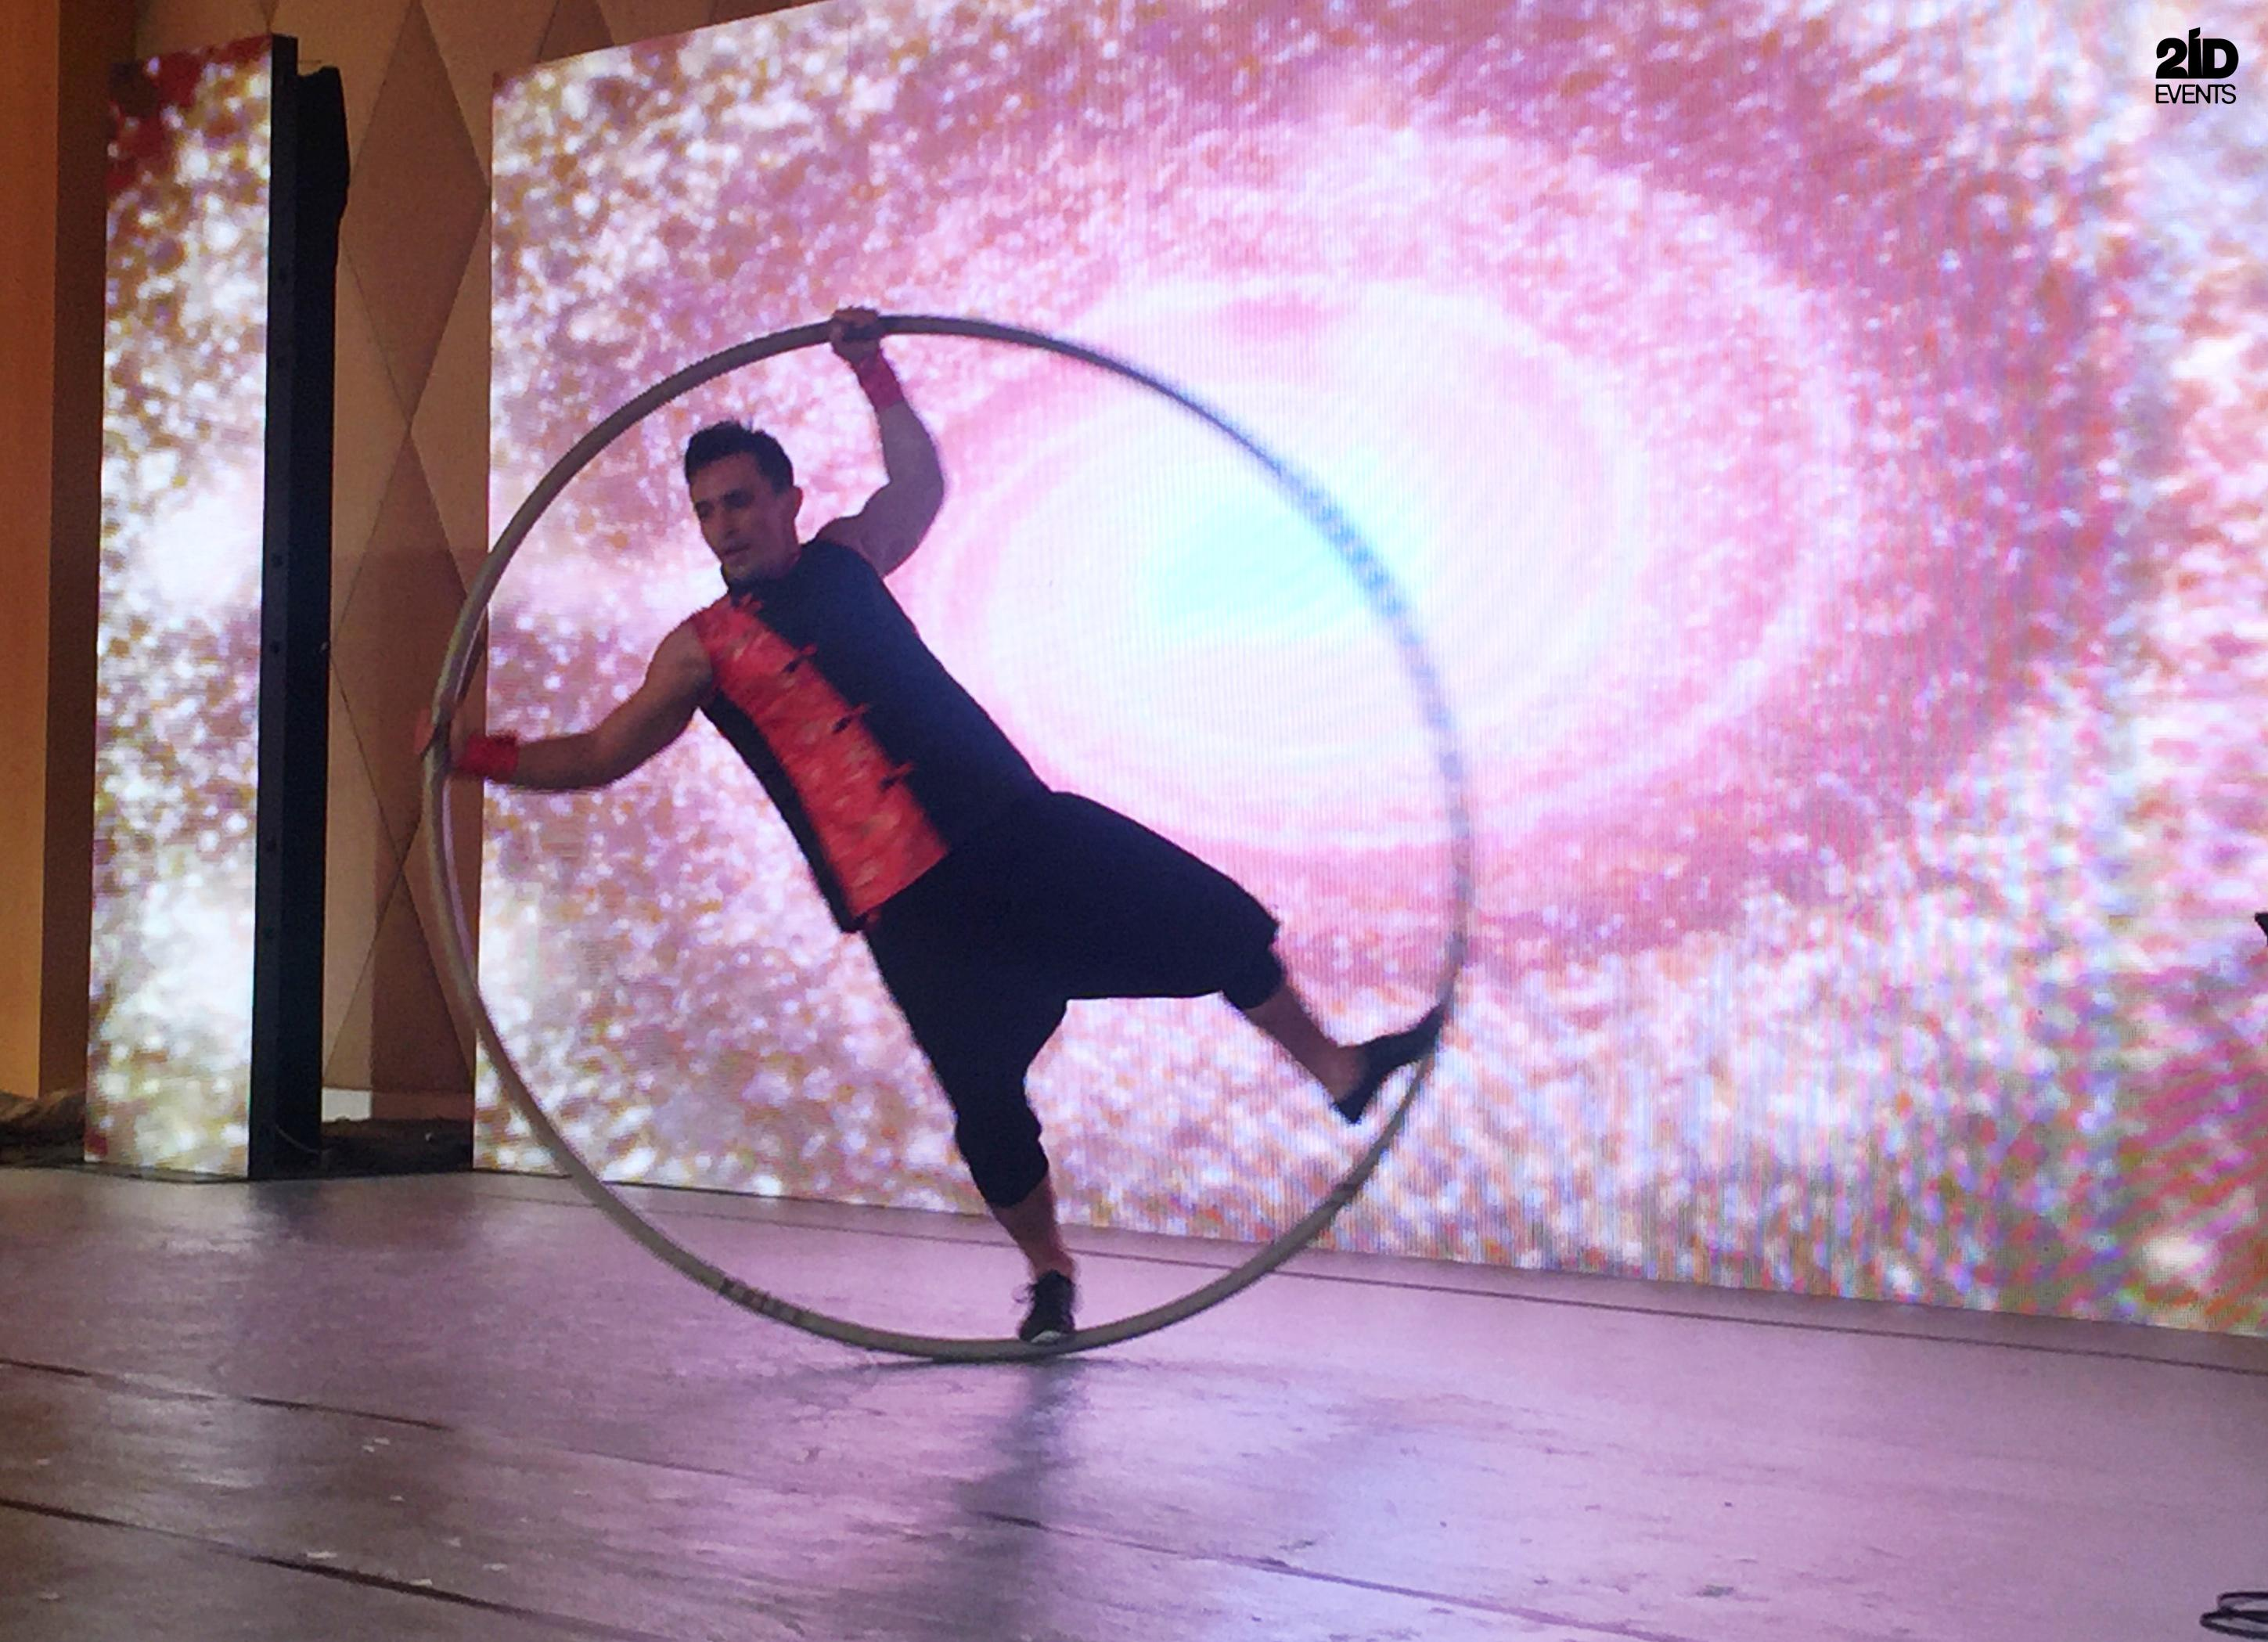 Cyr Wheel Show for corporate events